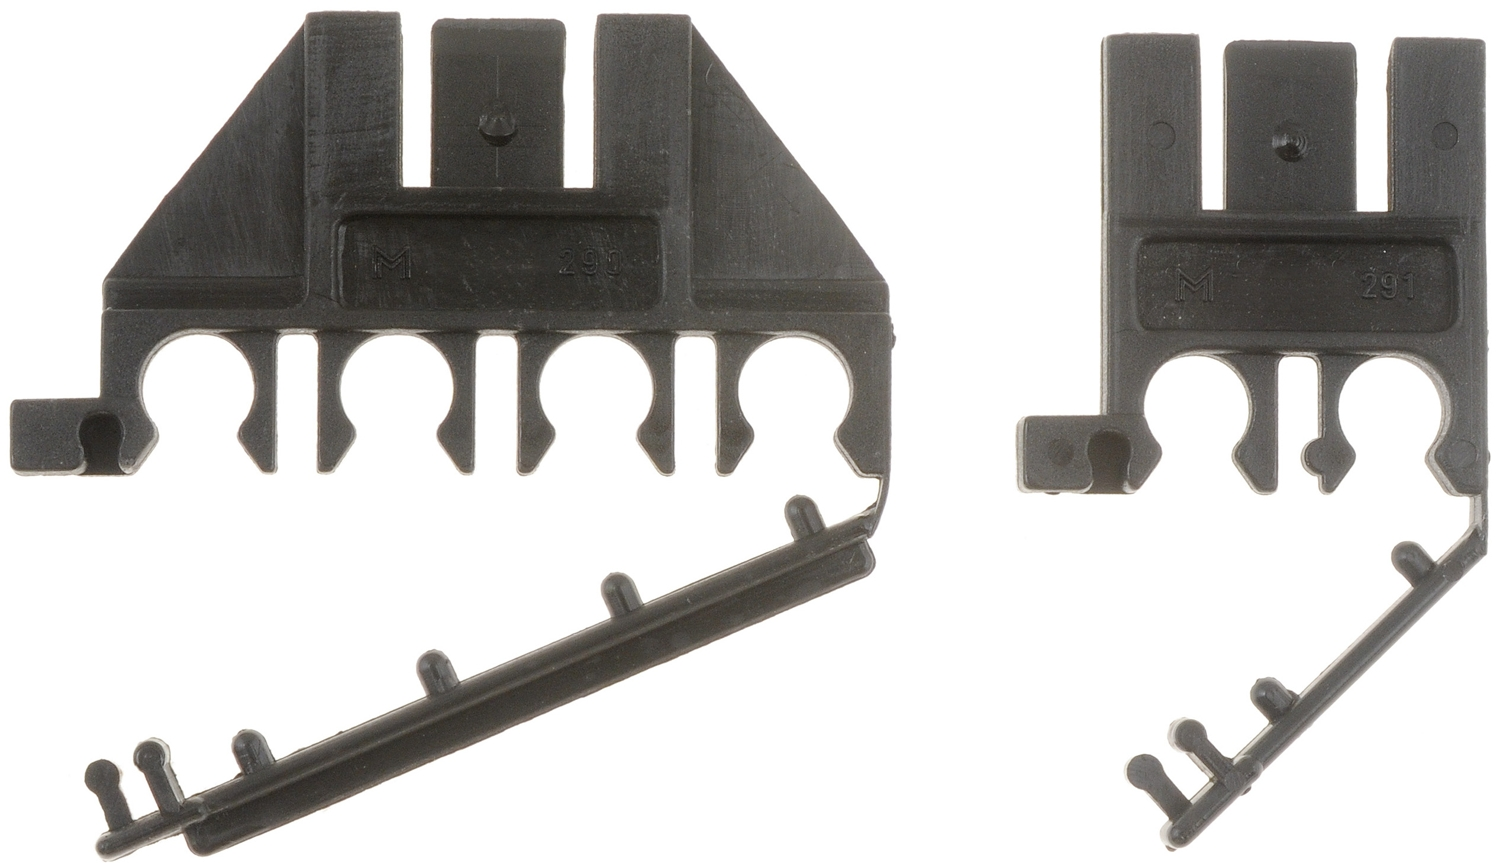 40284 Help! By Dorman Spark Plug Wire Separator One Short Wire Clip ...